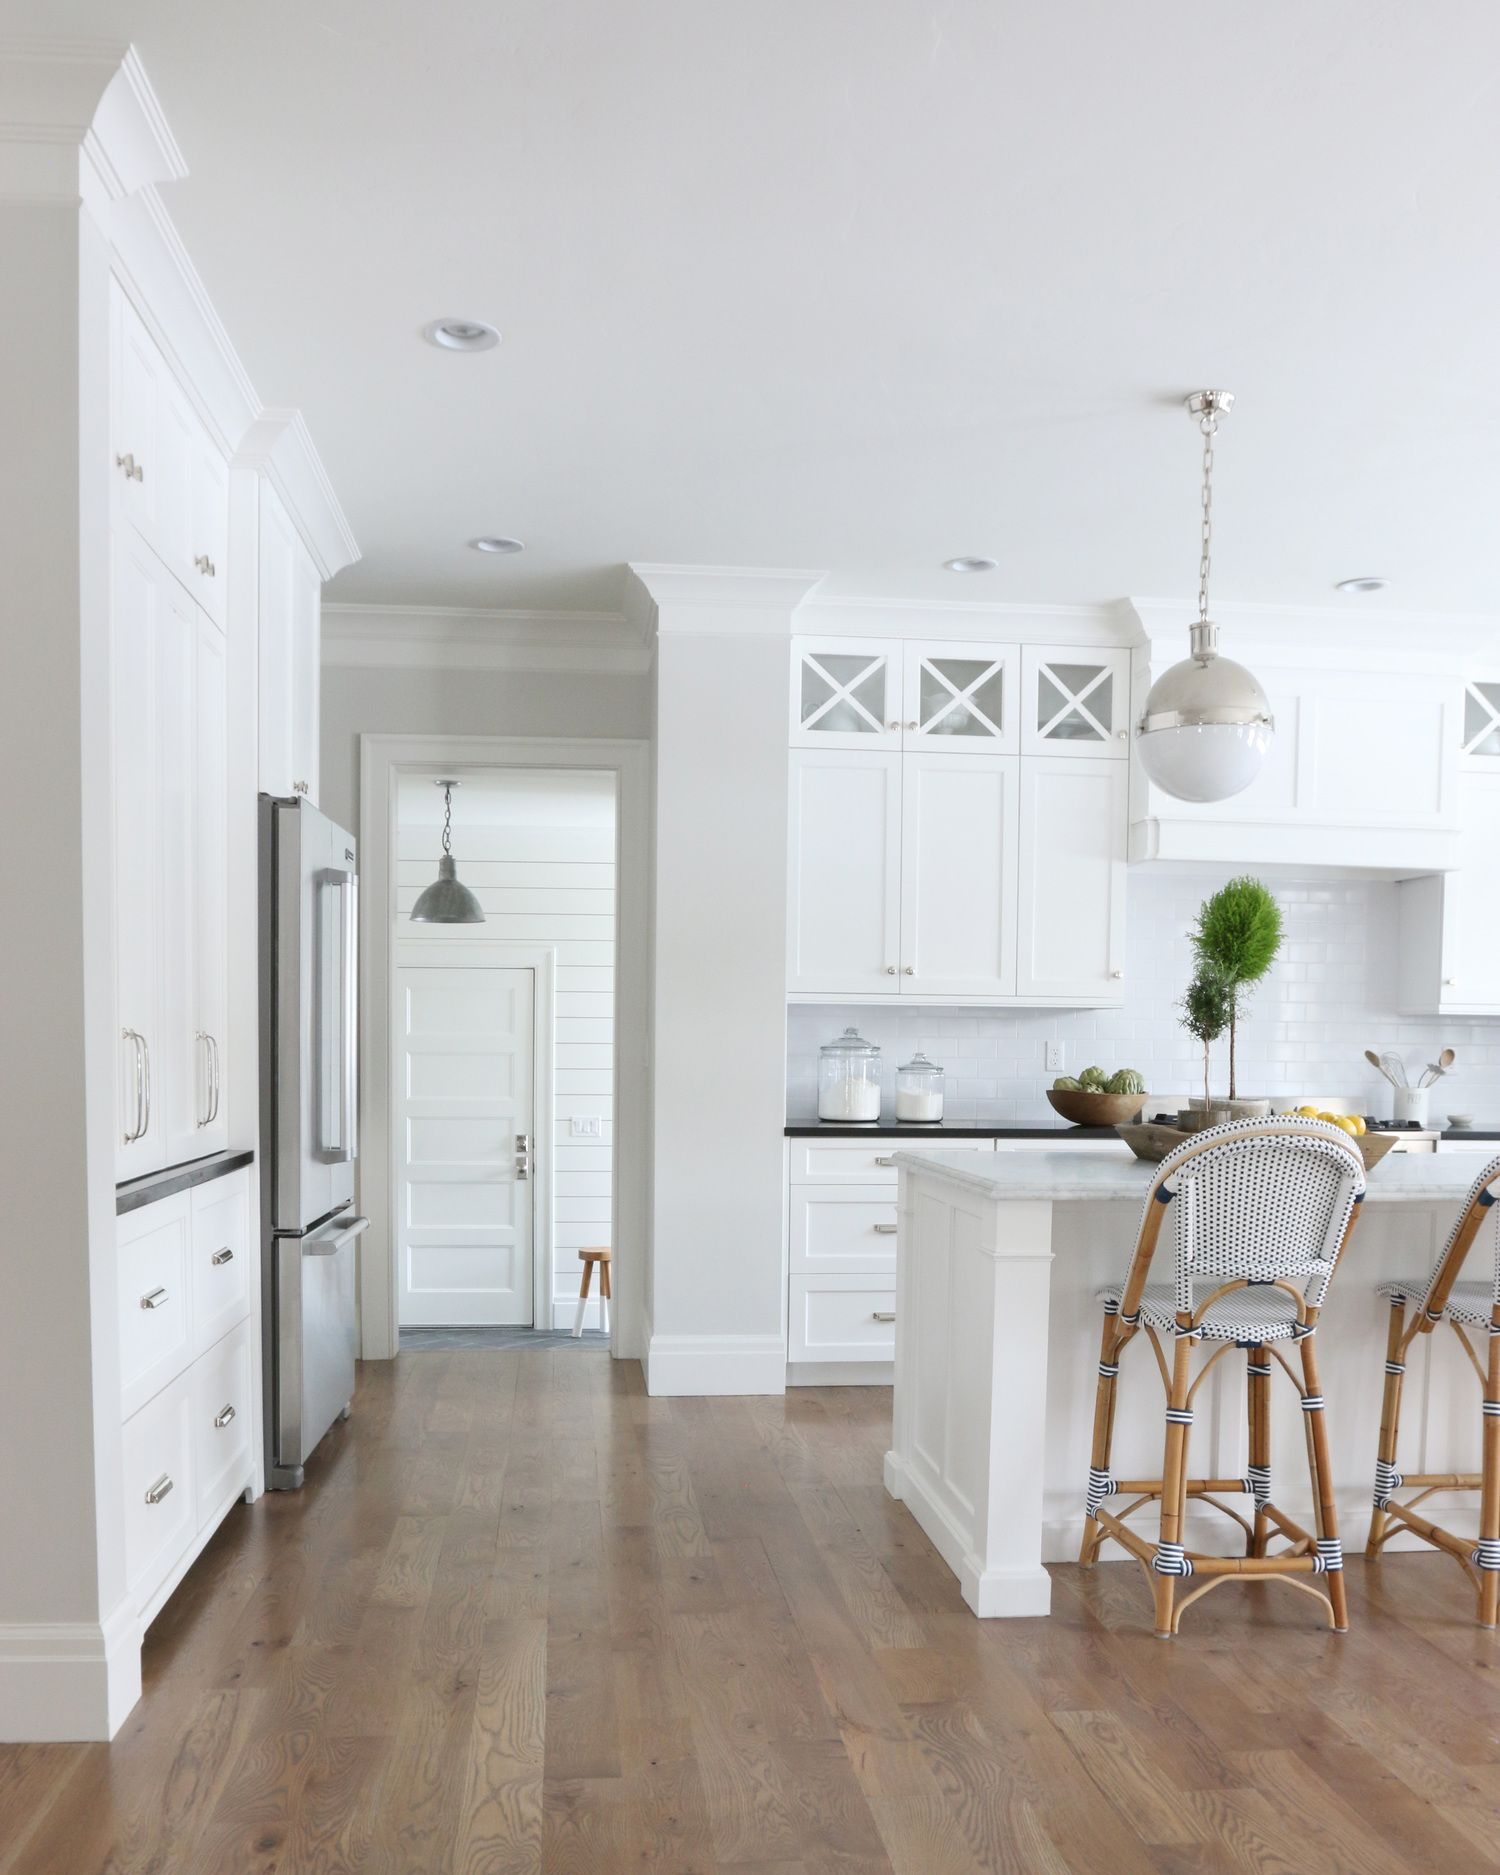 The midway house kitchen benjamin moore classic gray for Warm grey interior paint